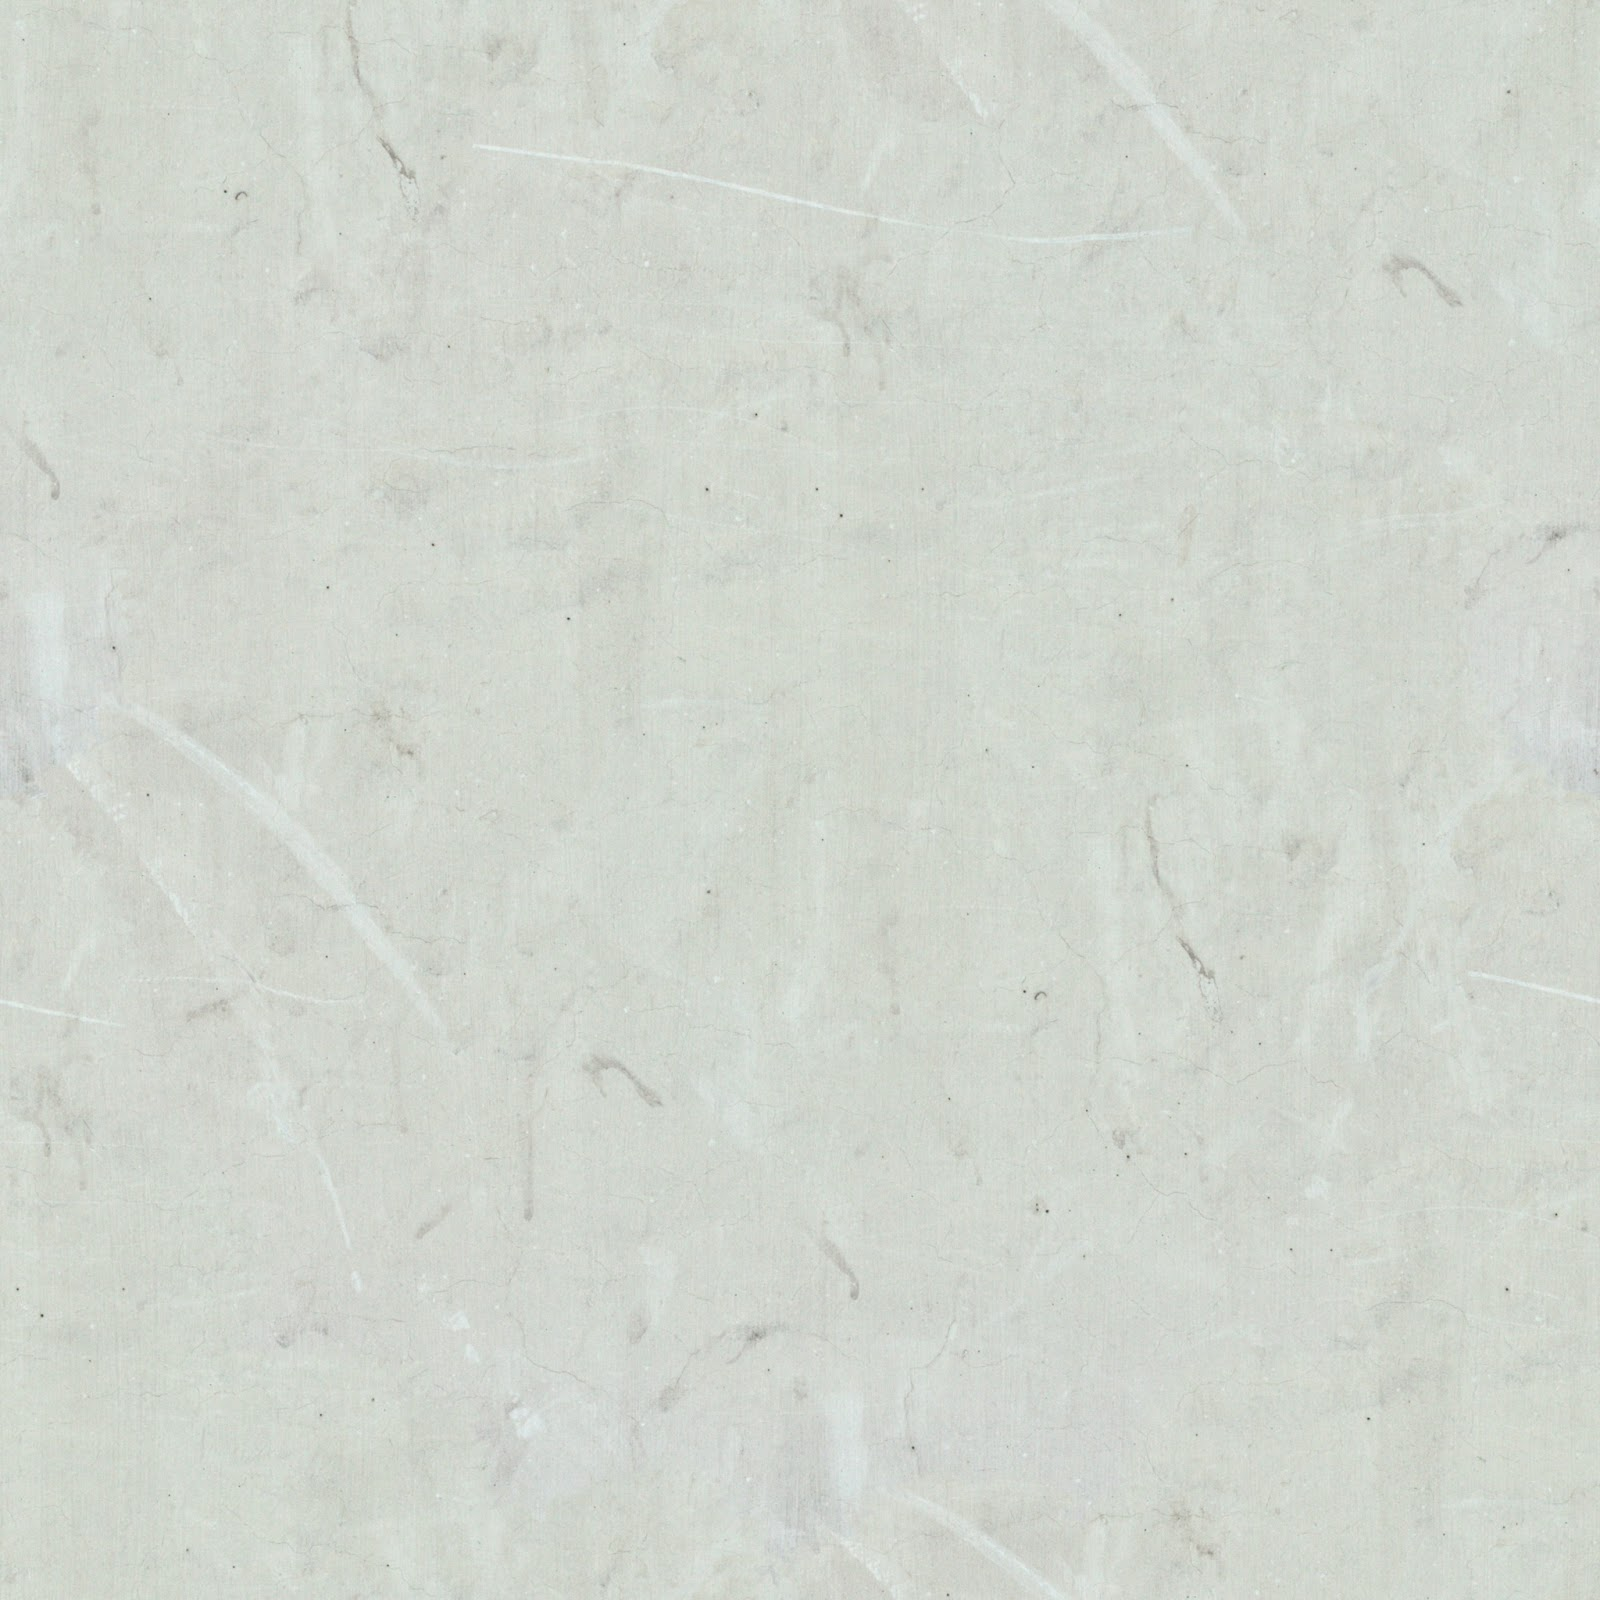 Concrete wall smooth white grunge seamless texture 2048x2048